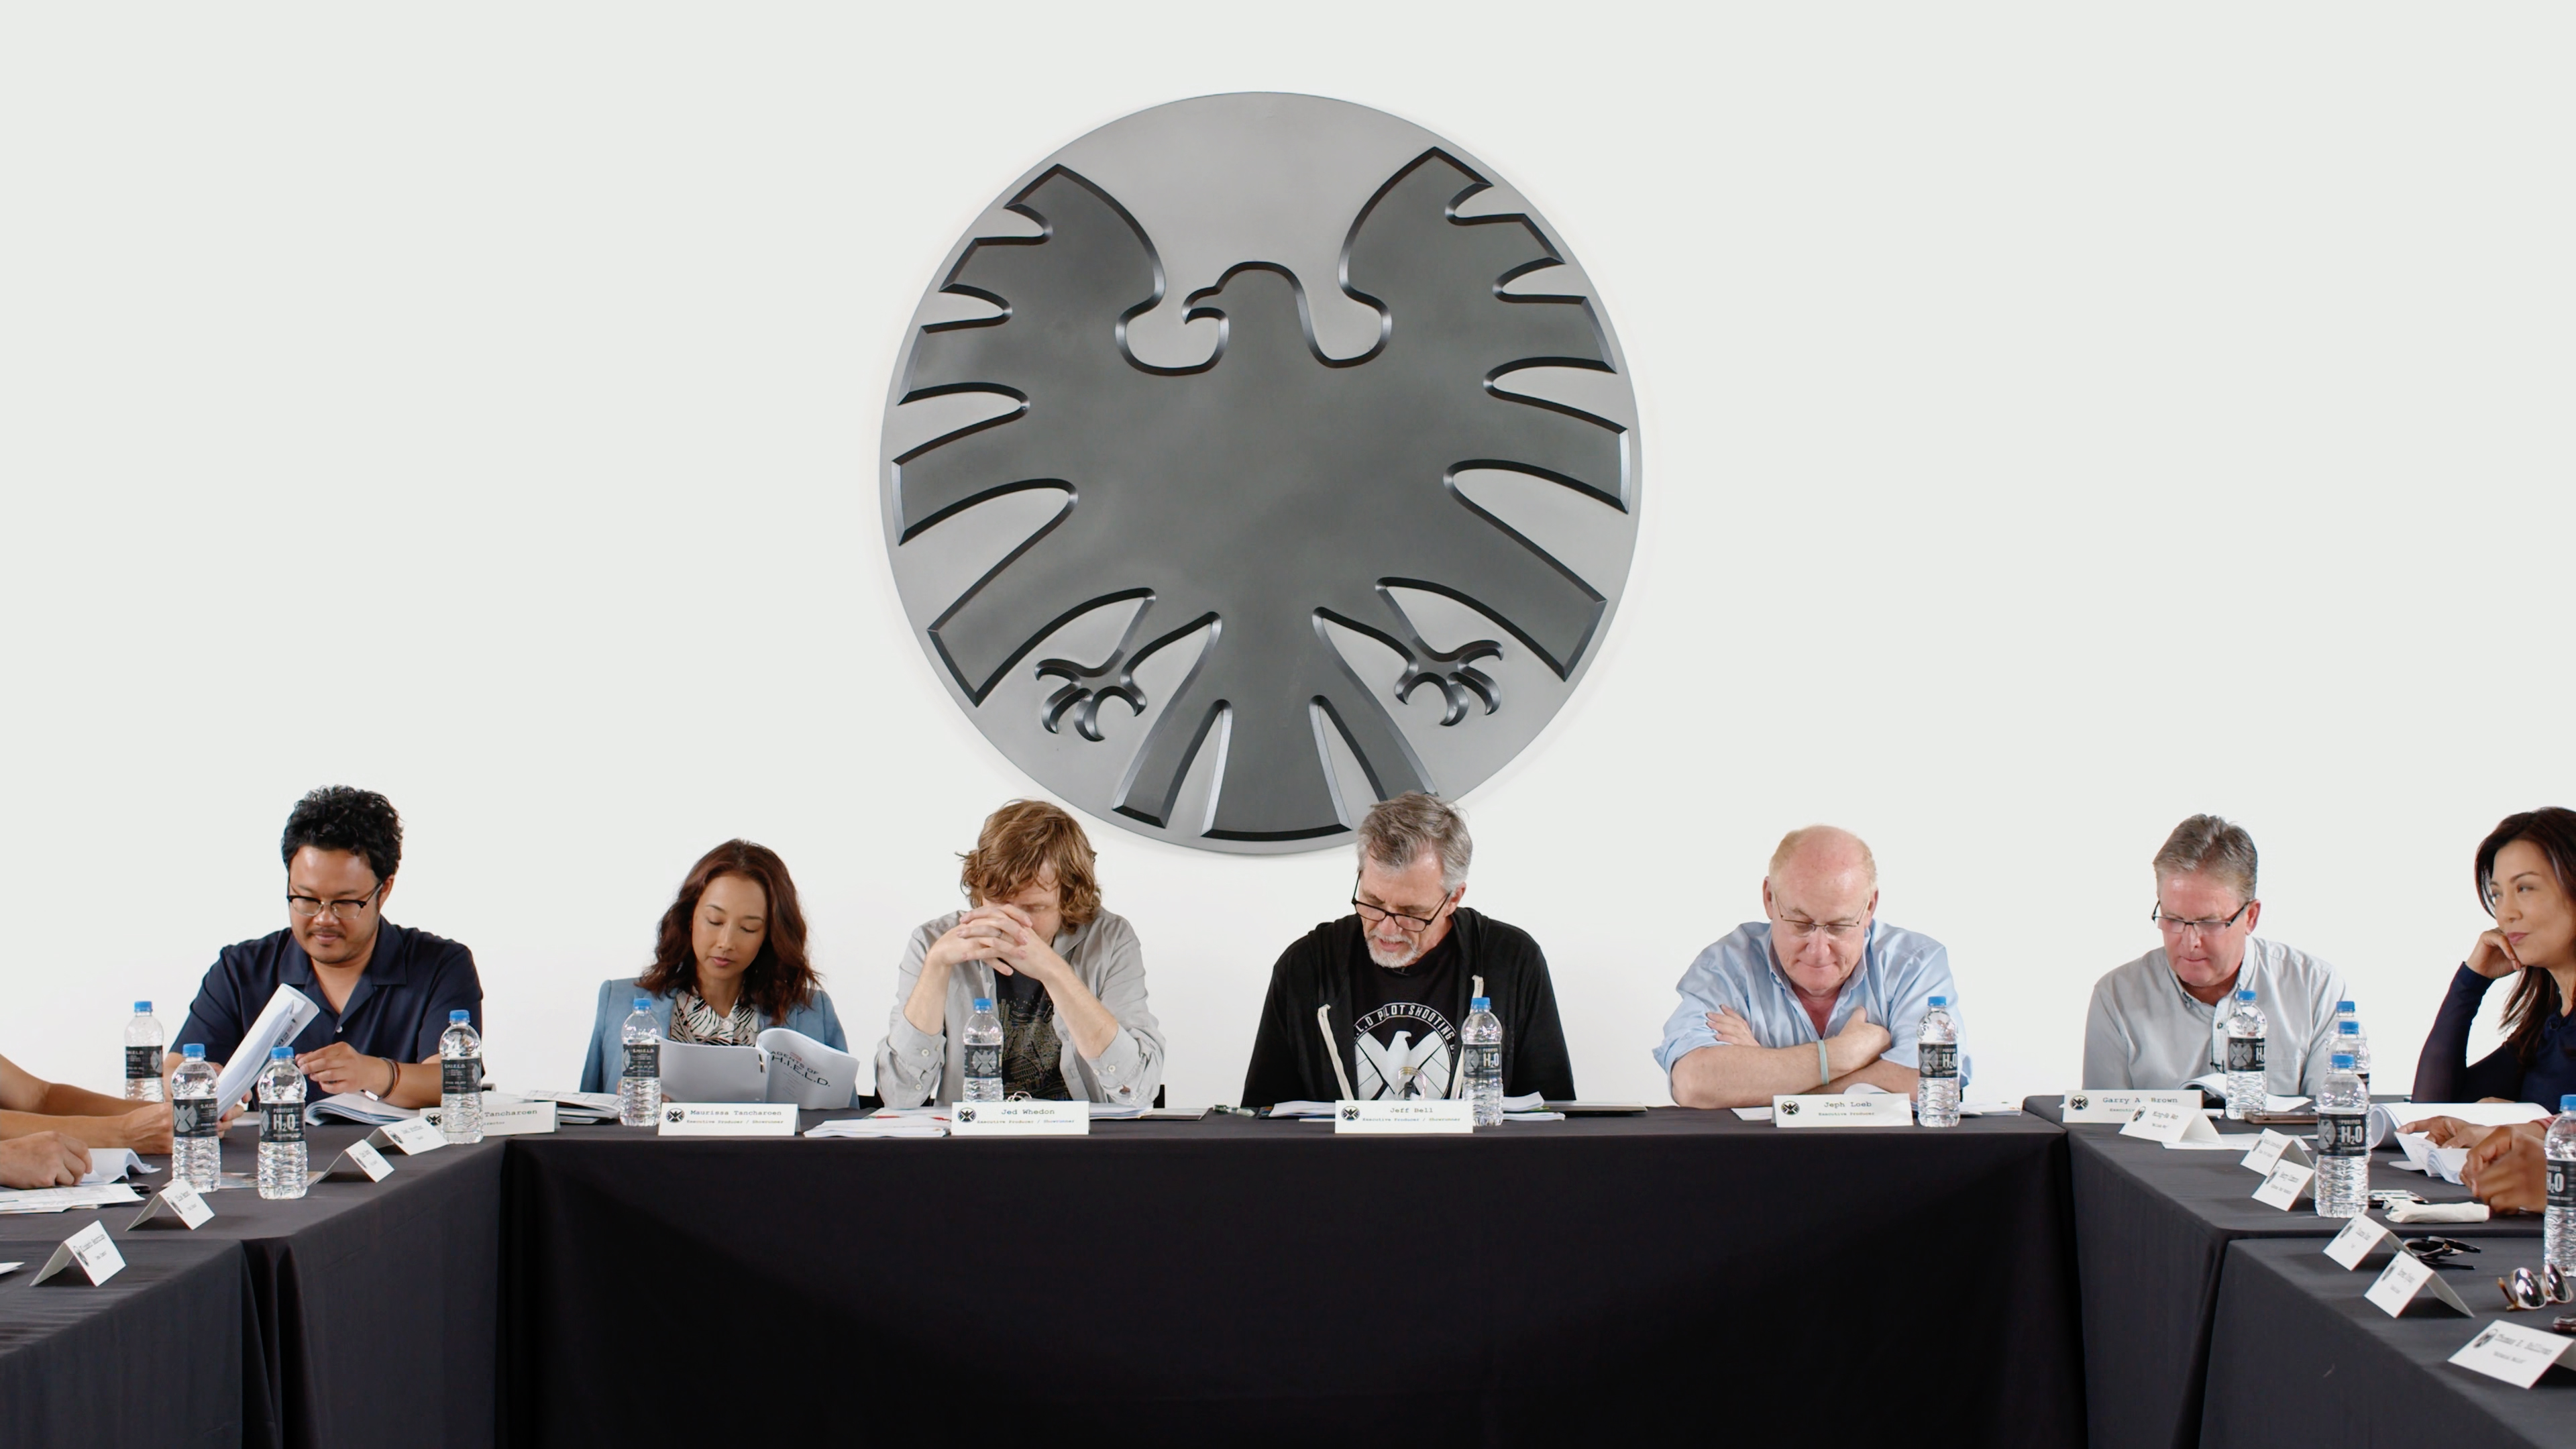 Marvel's Agents of SHIELD Final Table Read